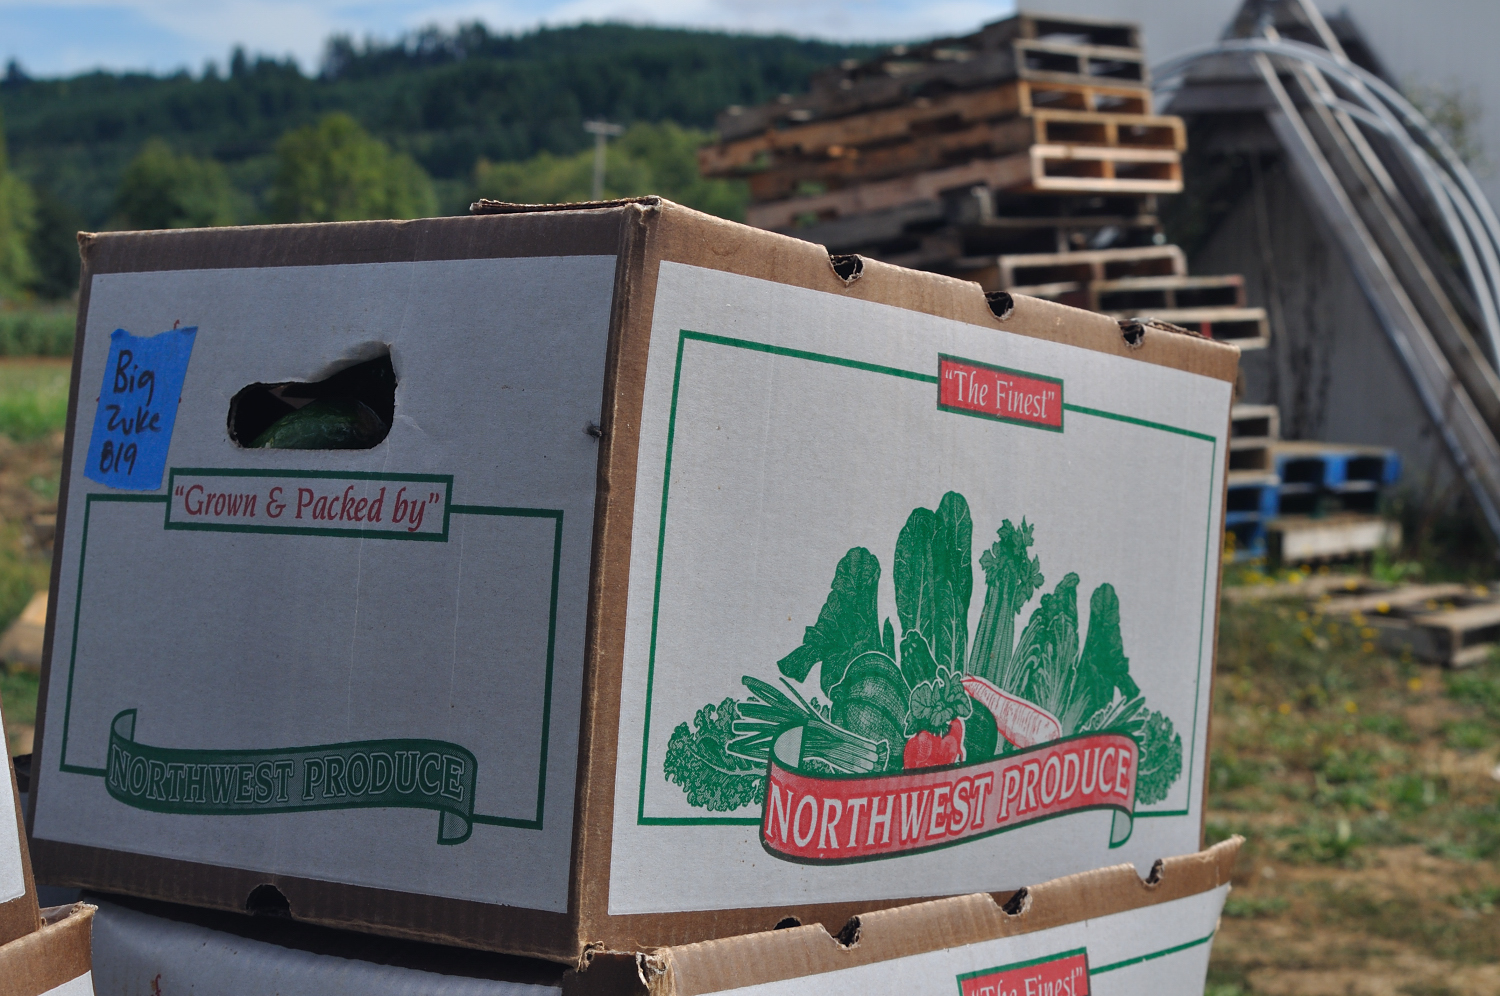 northwest produce box